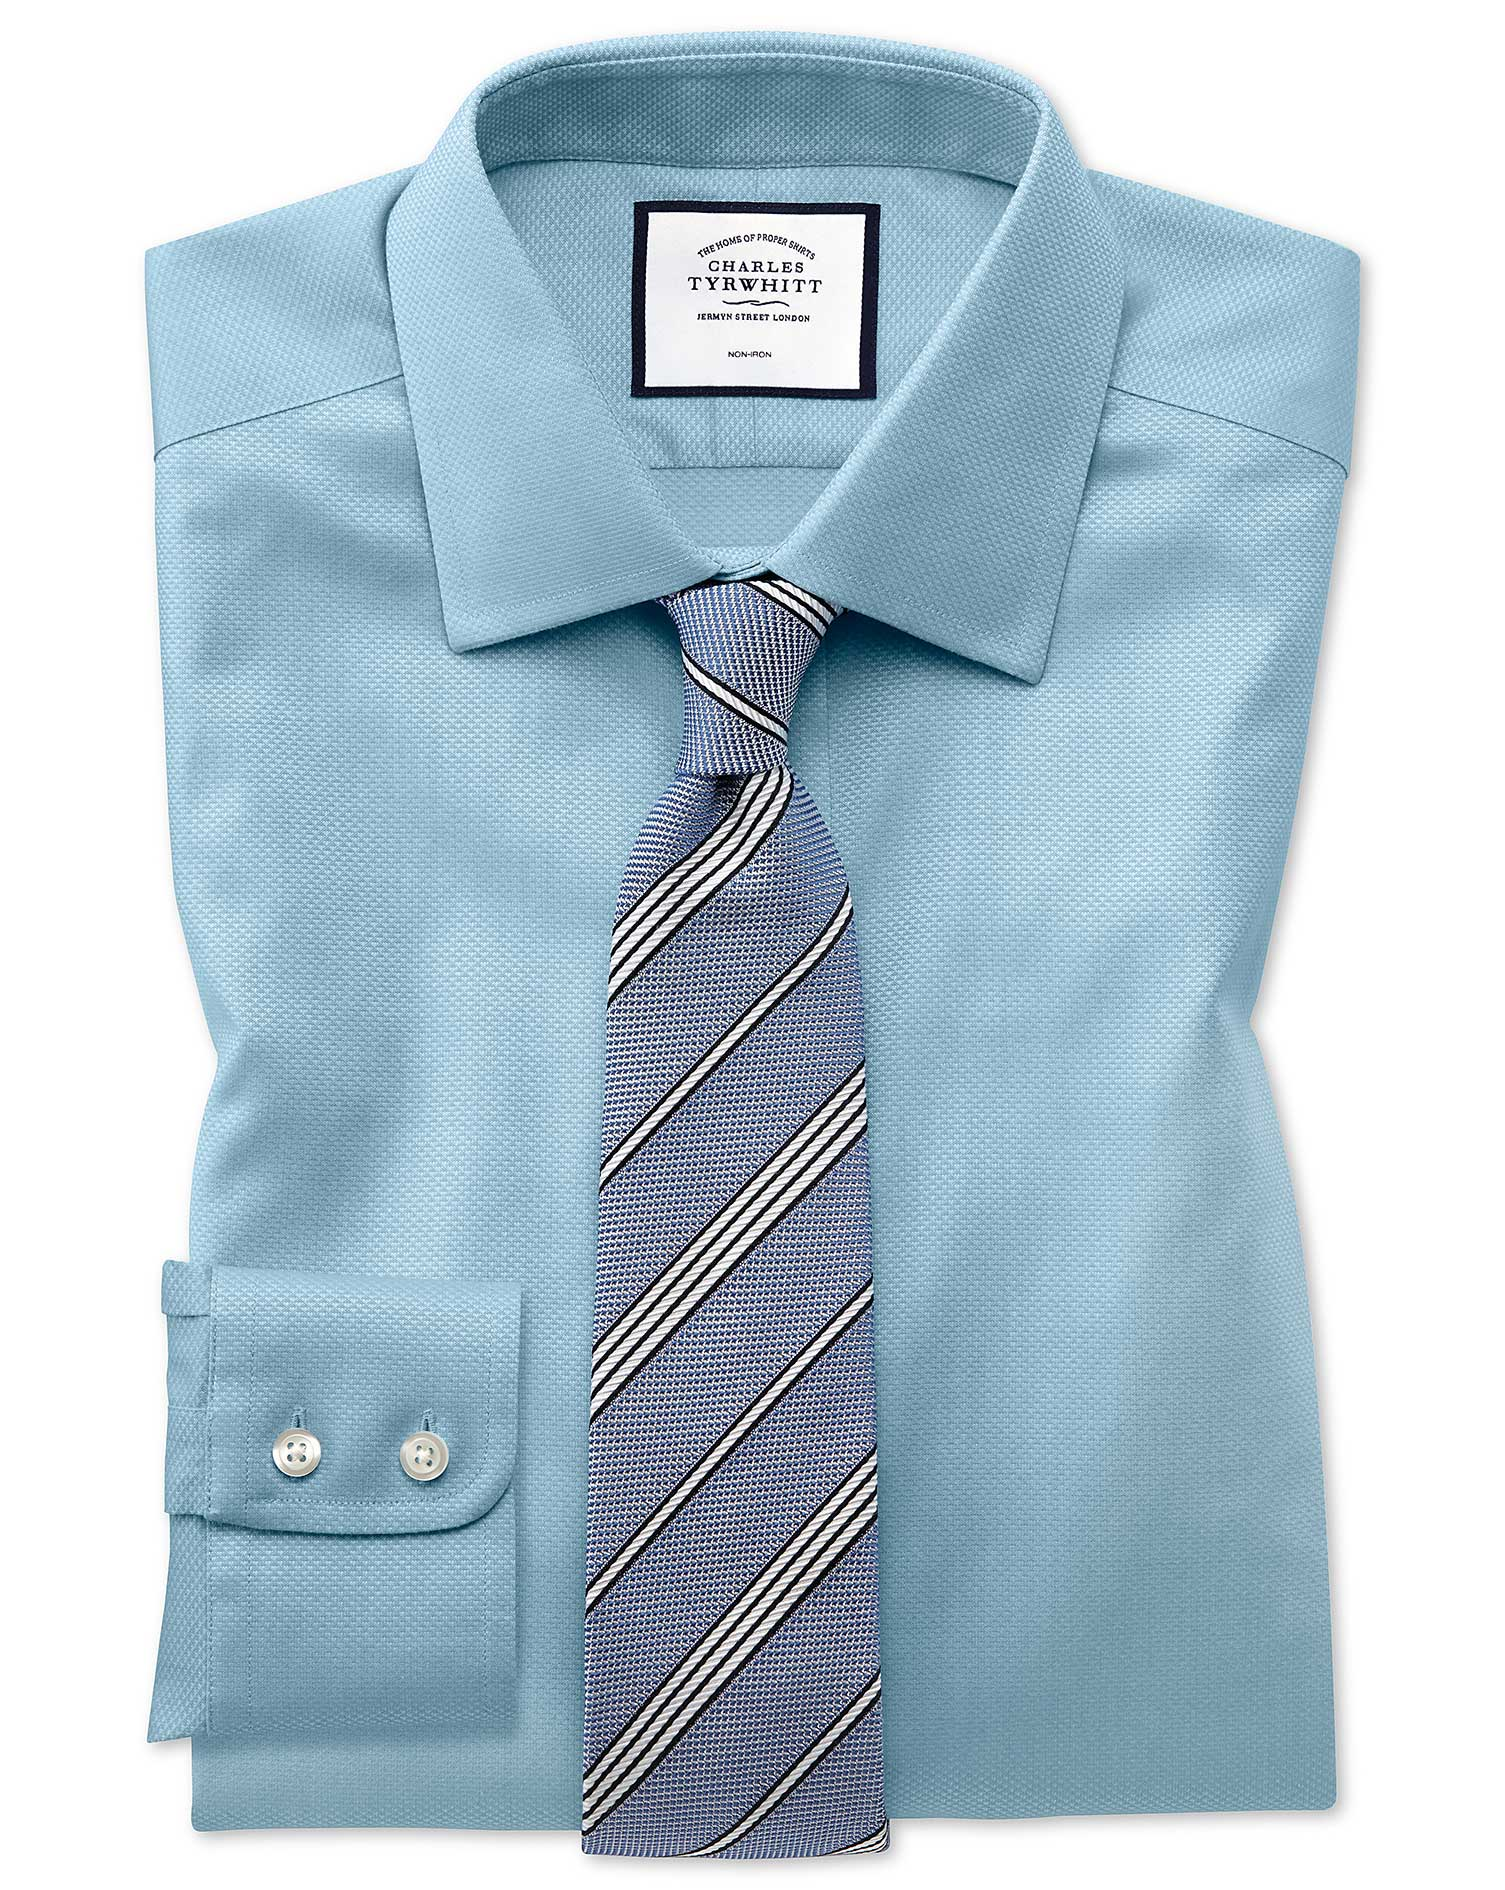 Classic Fit Non-Iron Teal Triangle Weave Cotton Formal Shirt Double Cuff Size 16.5/35 by Charles Tyr